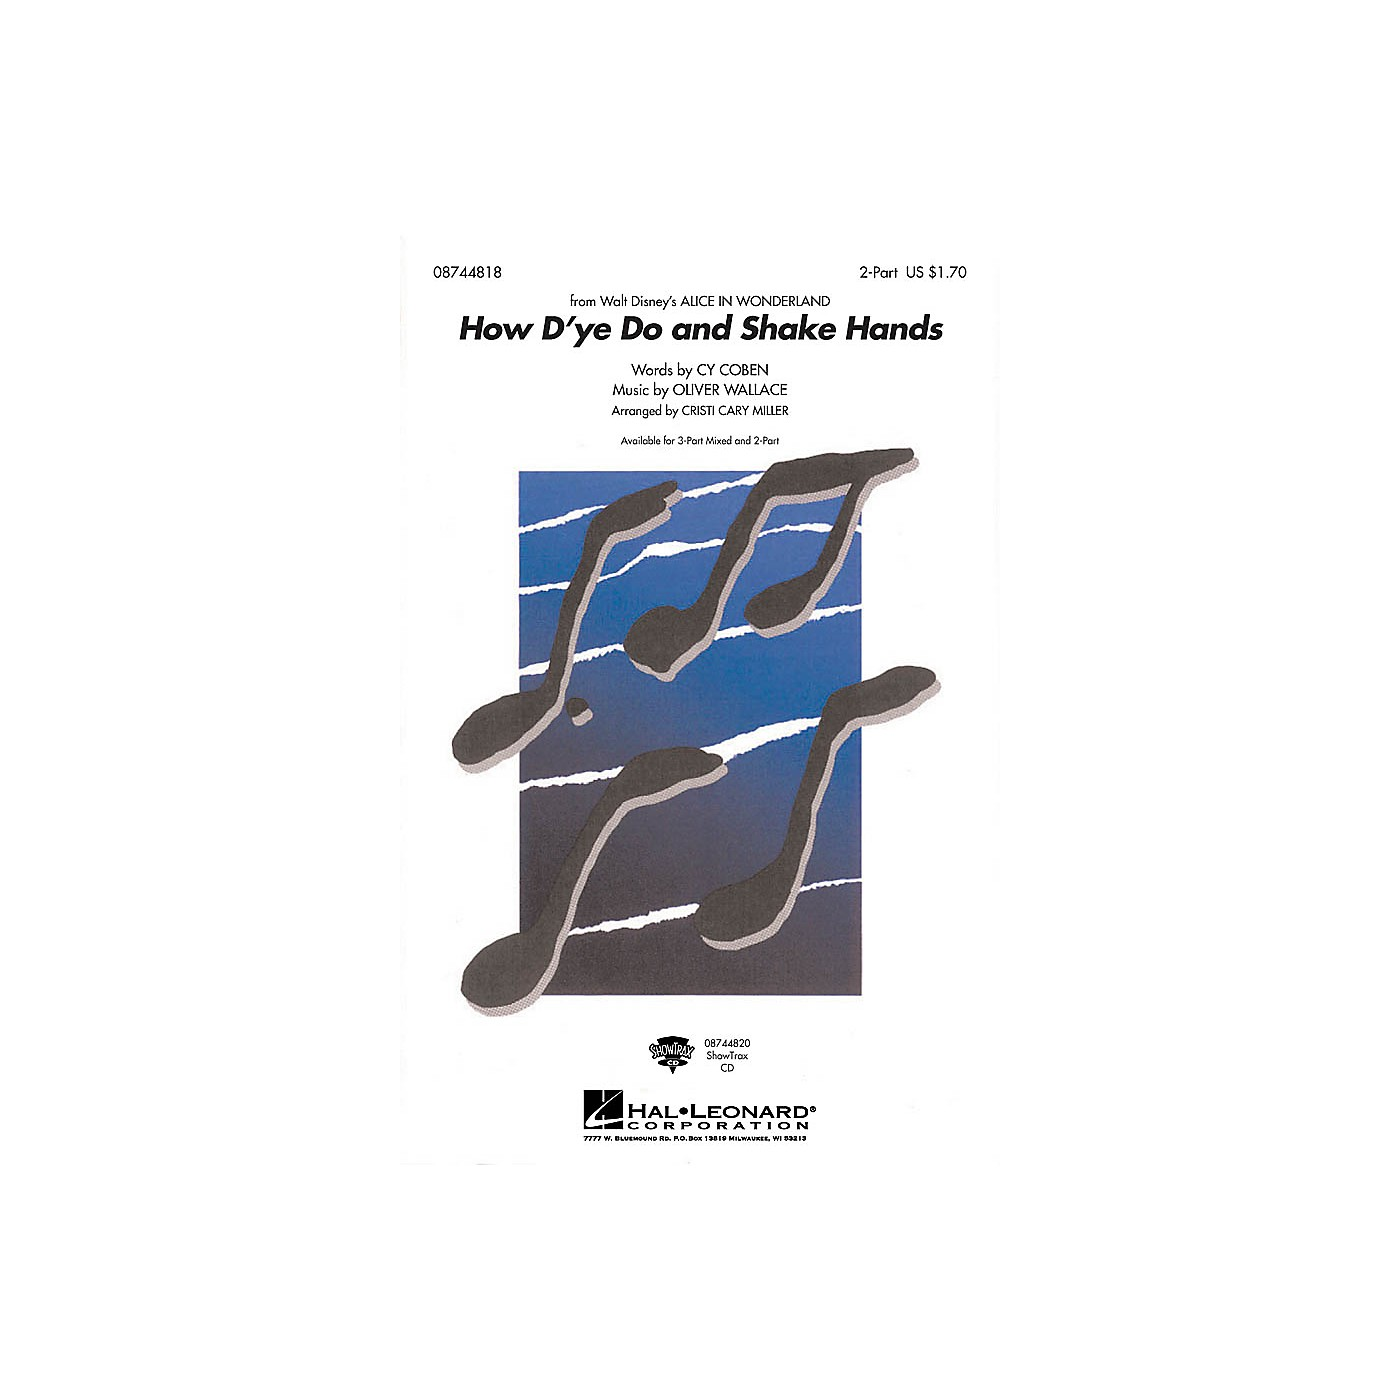 Hal Leonard How D'ye Do and Shake Hands 2-Part arranged by Cristi Cary Miller thumbnail